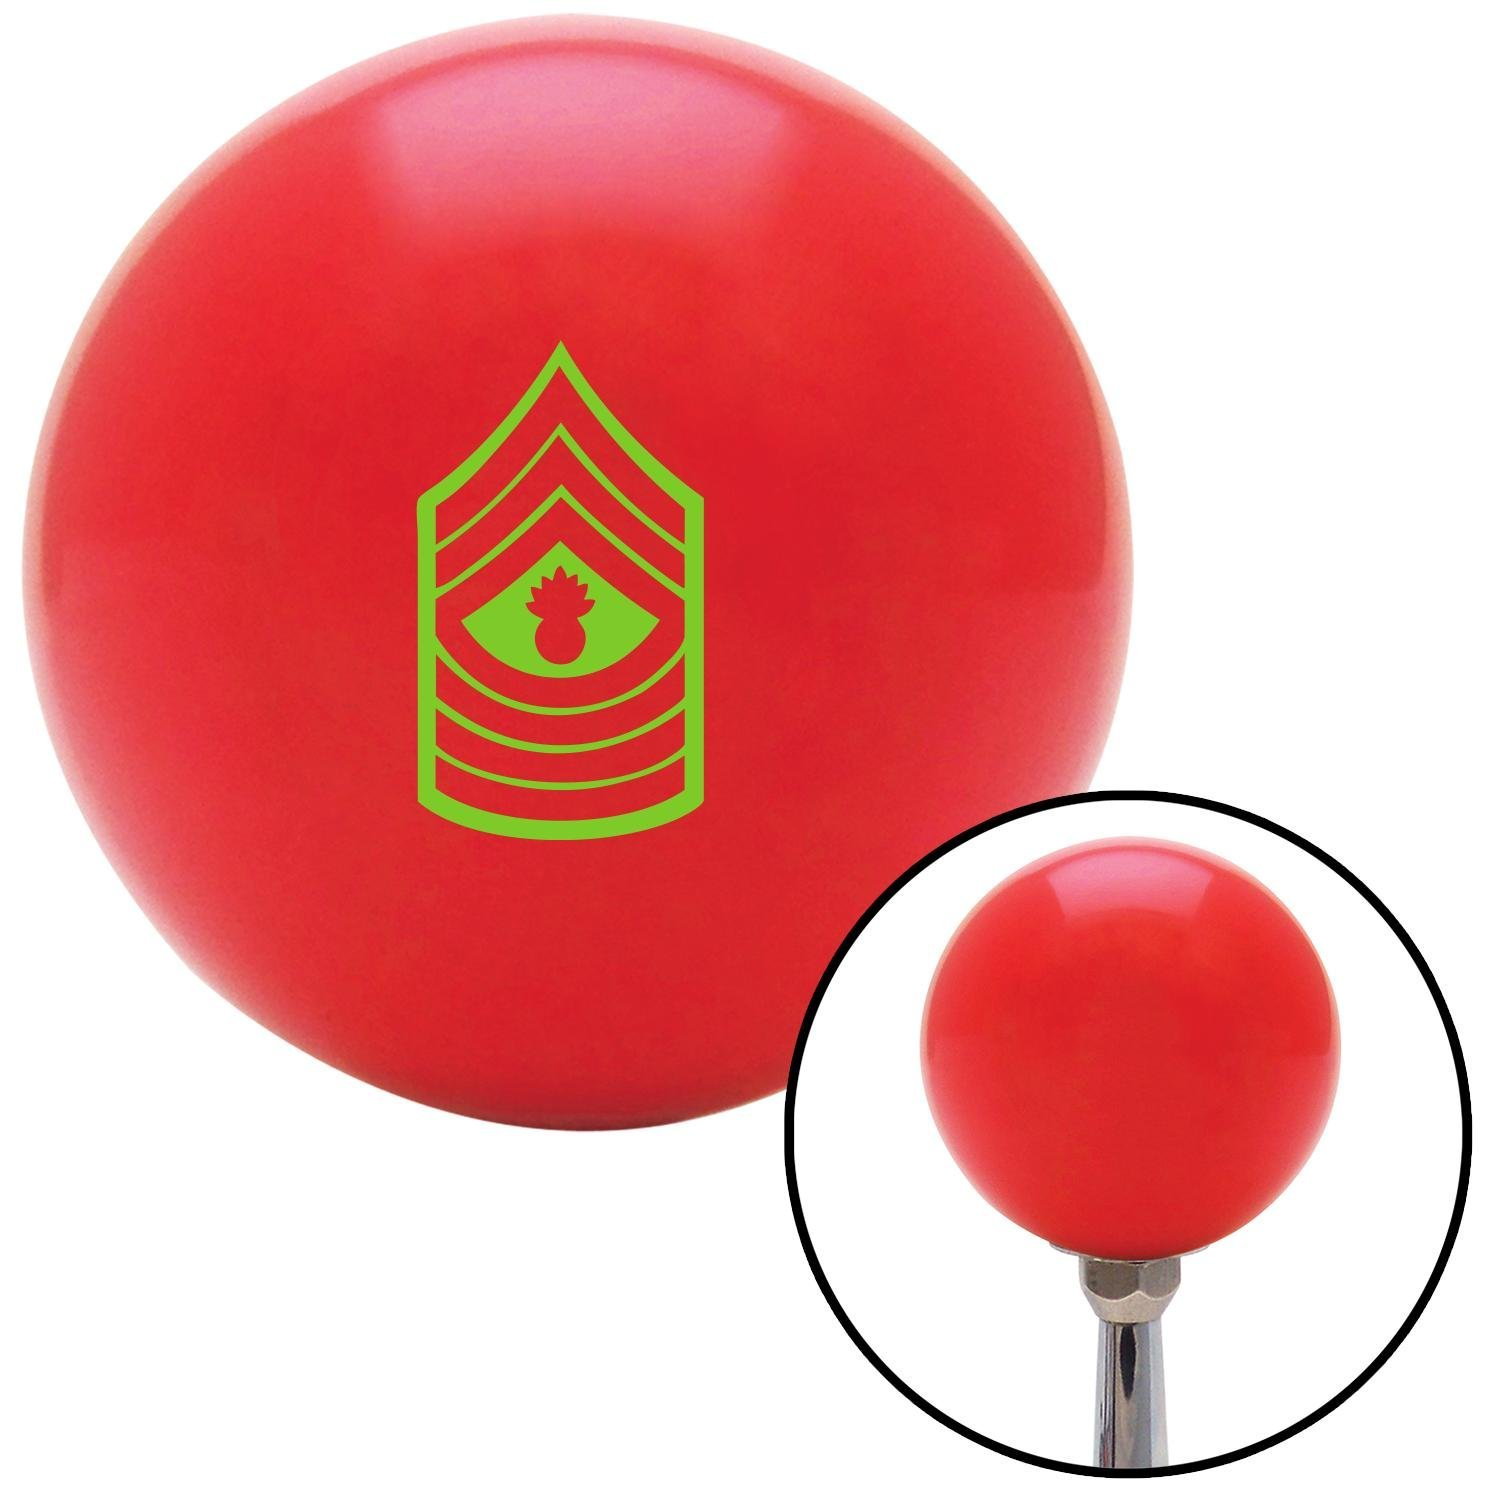 Green 09 Master Gunnery Sergeant American Shifter 98478 Red Shift Knob with M16 x 1.5 Insert